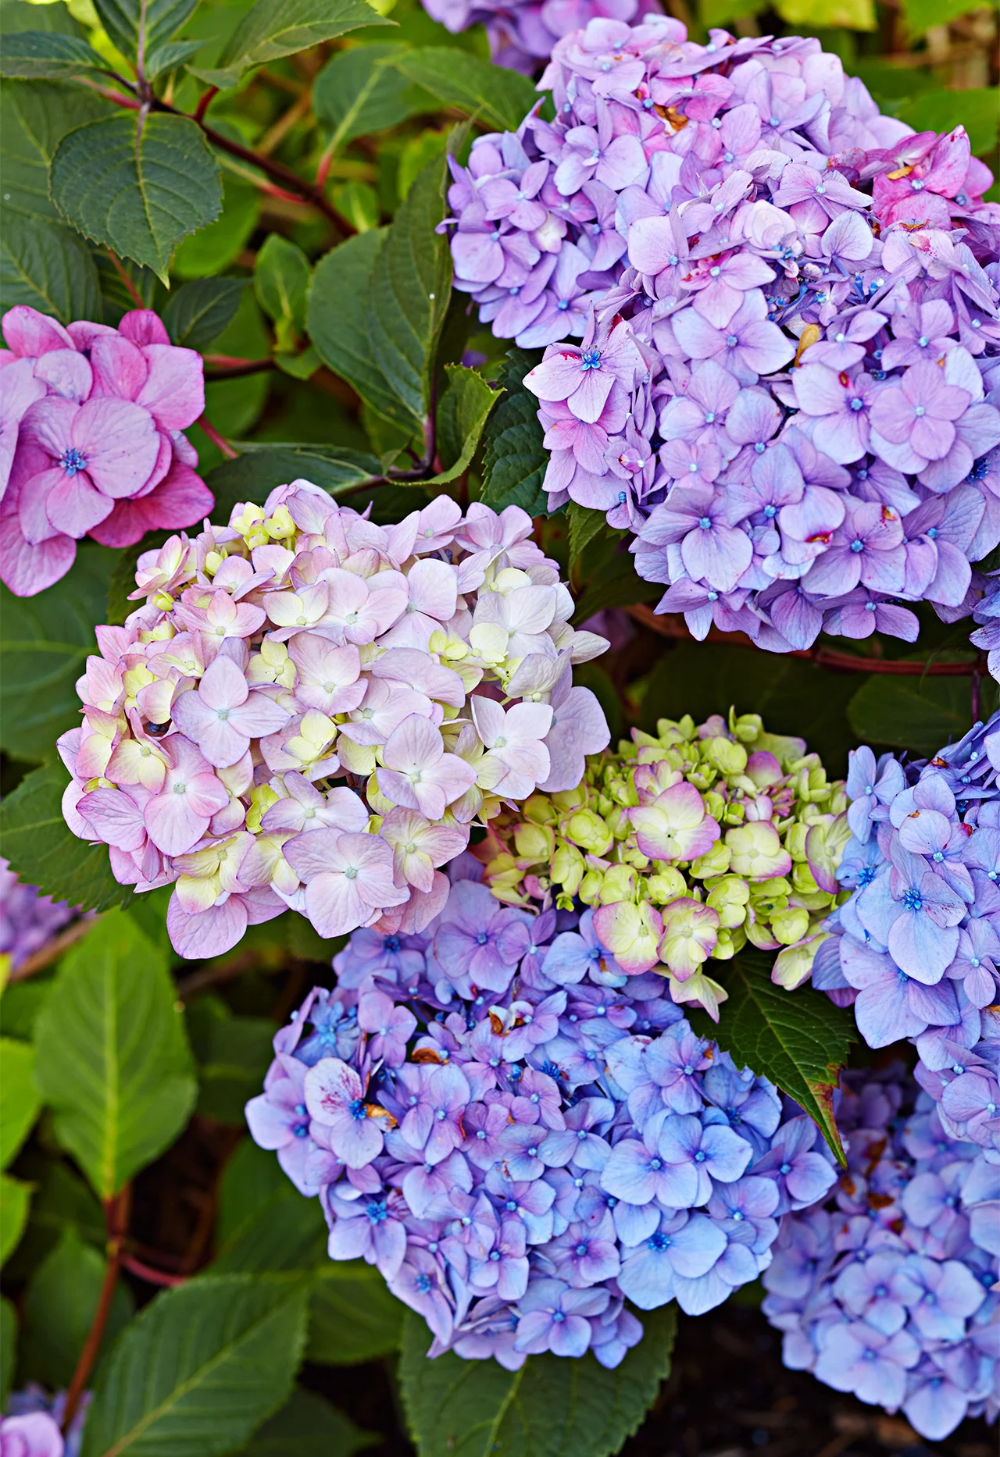 How To Choose And Care For The Most Colorful Hydrangeas Hydrangea Care Hydrangea Flower Hydrangea Colors